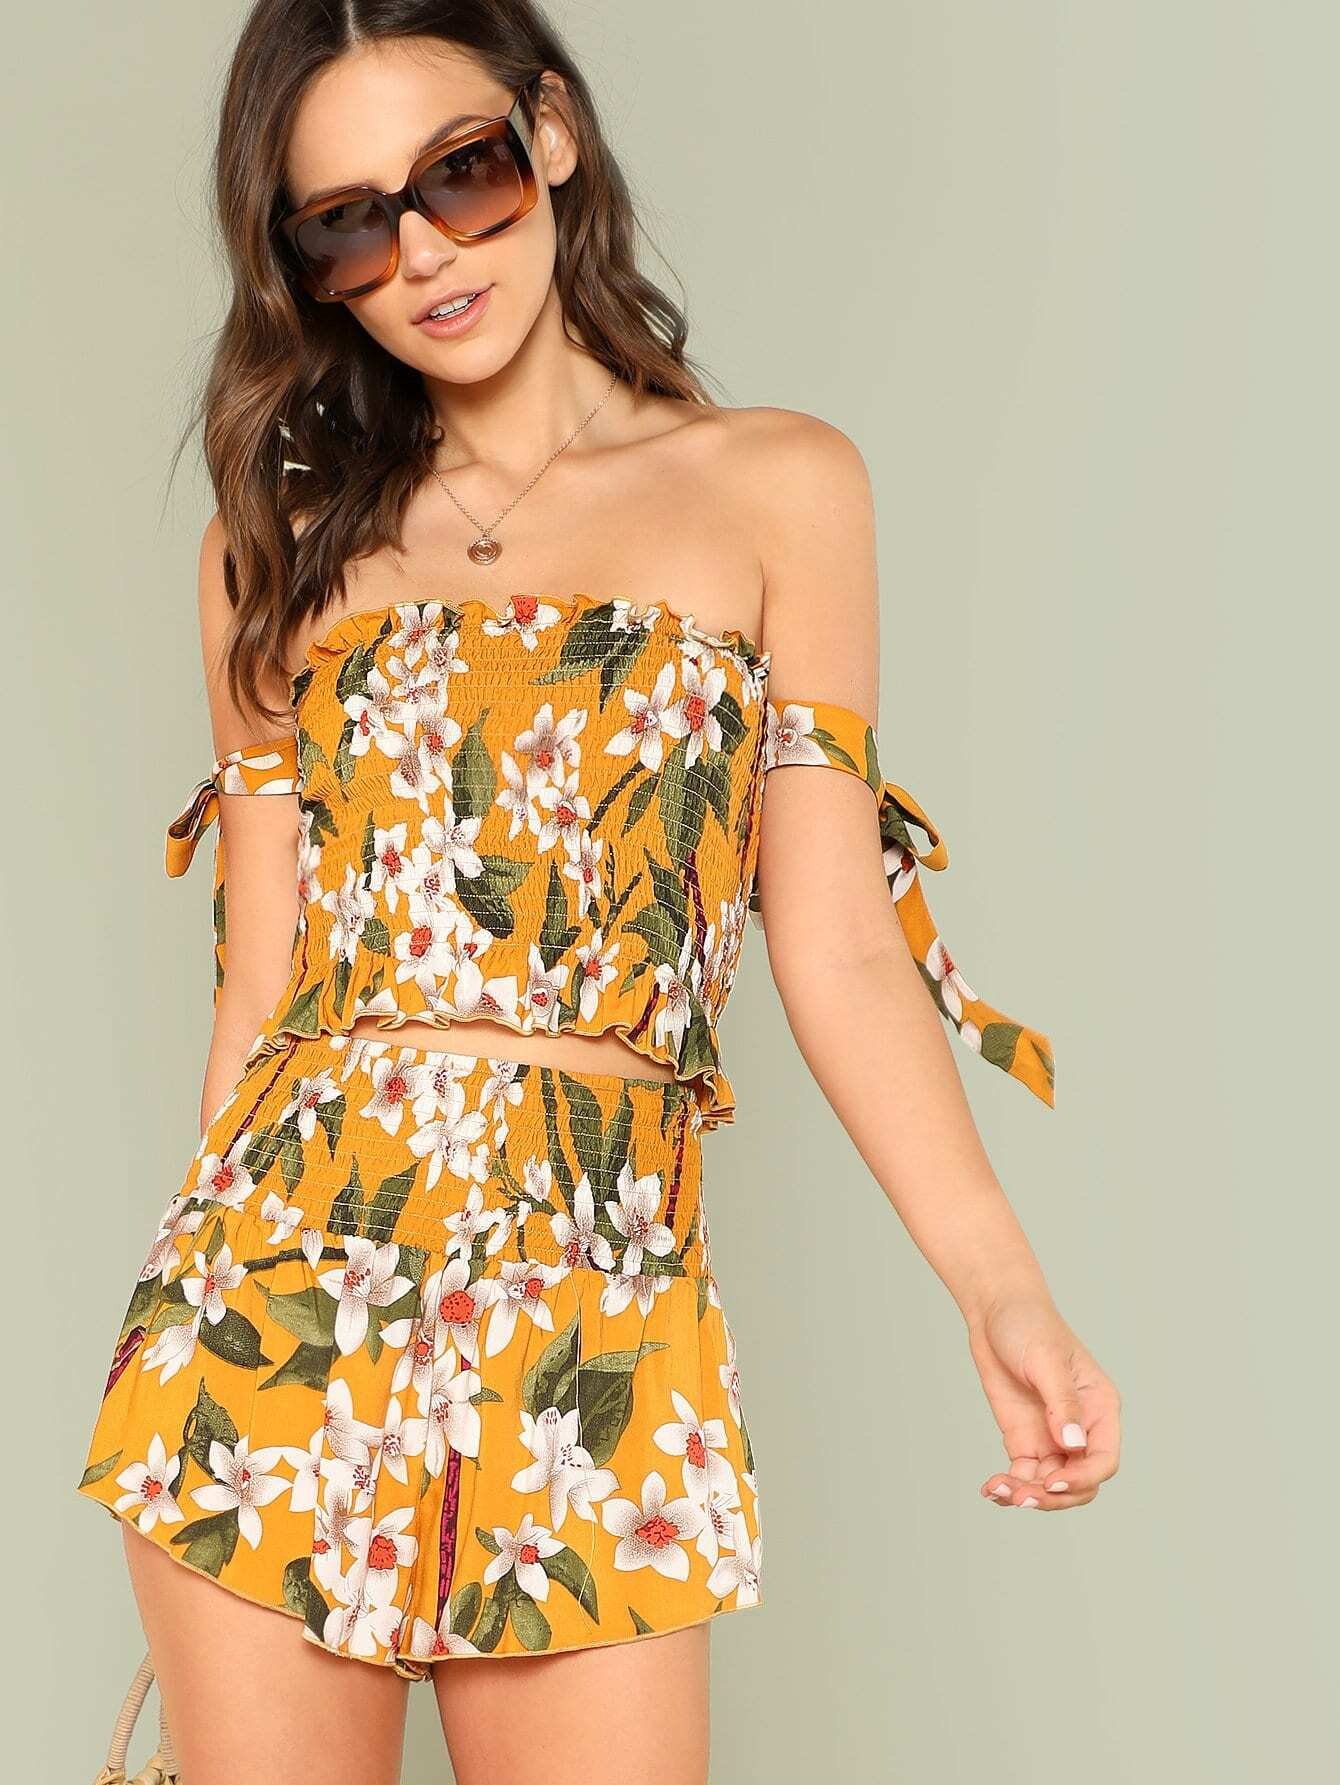 Flower Print Shirred Bardot Top & Shorts Set flower print shirred bardot top